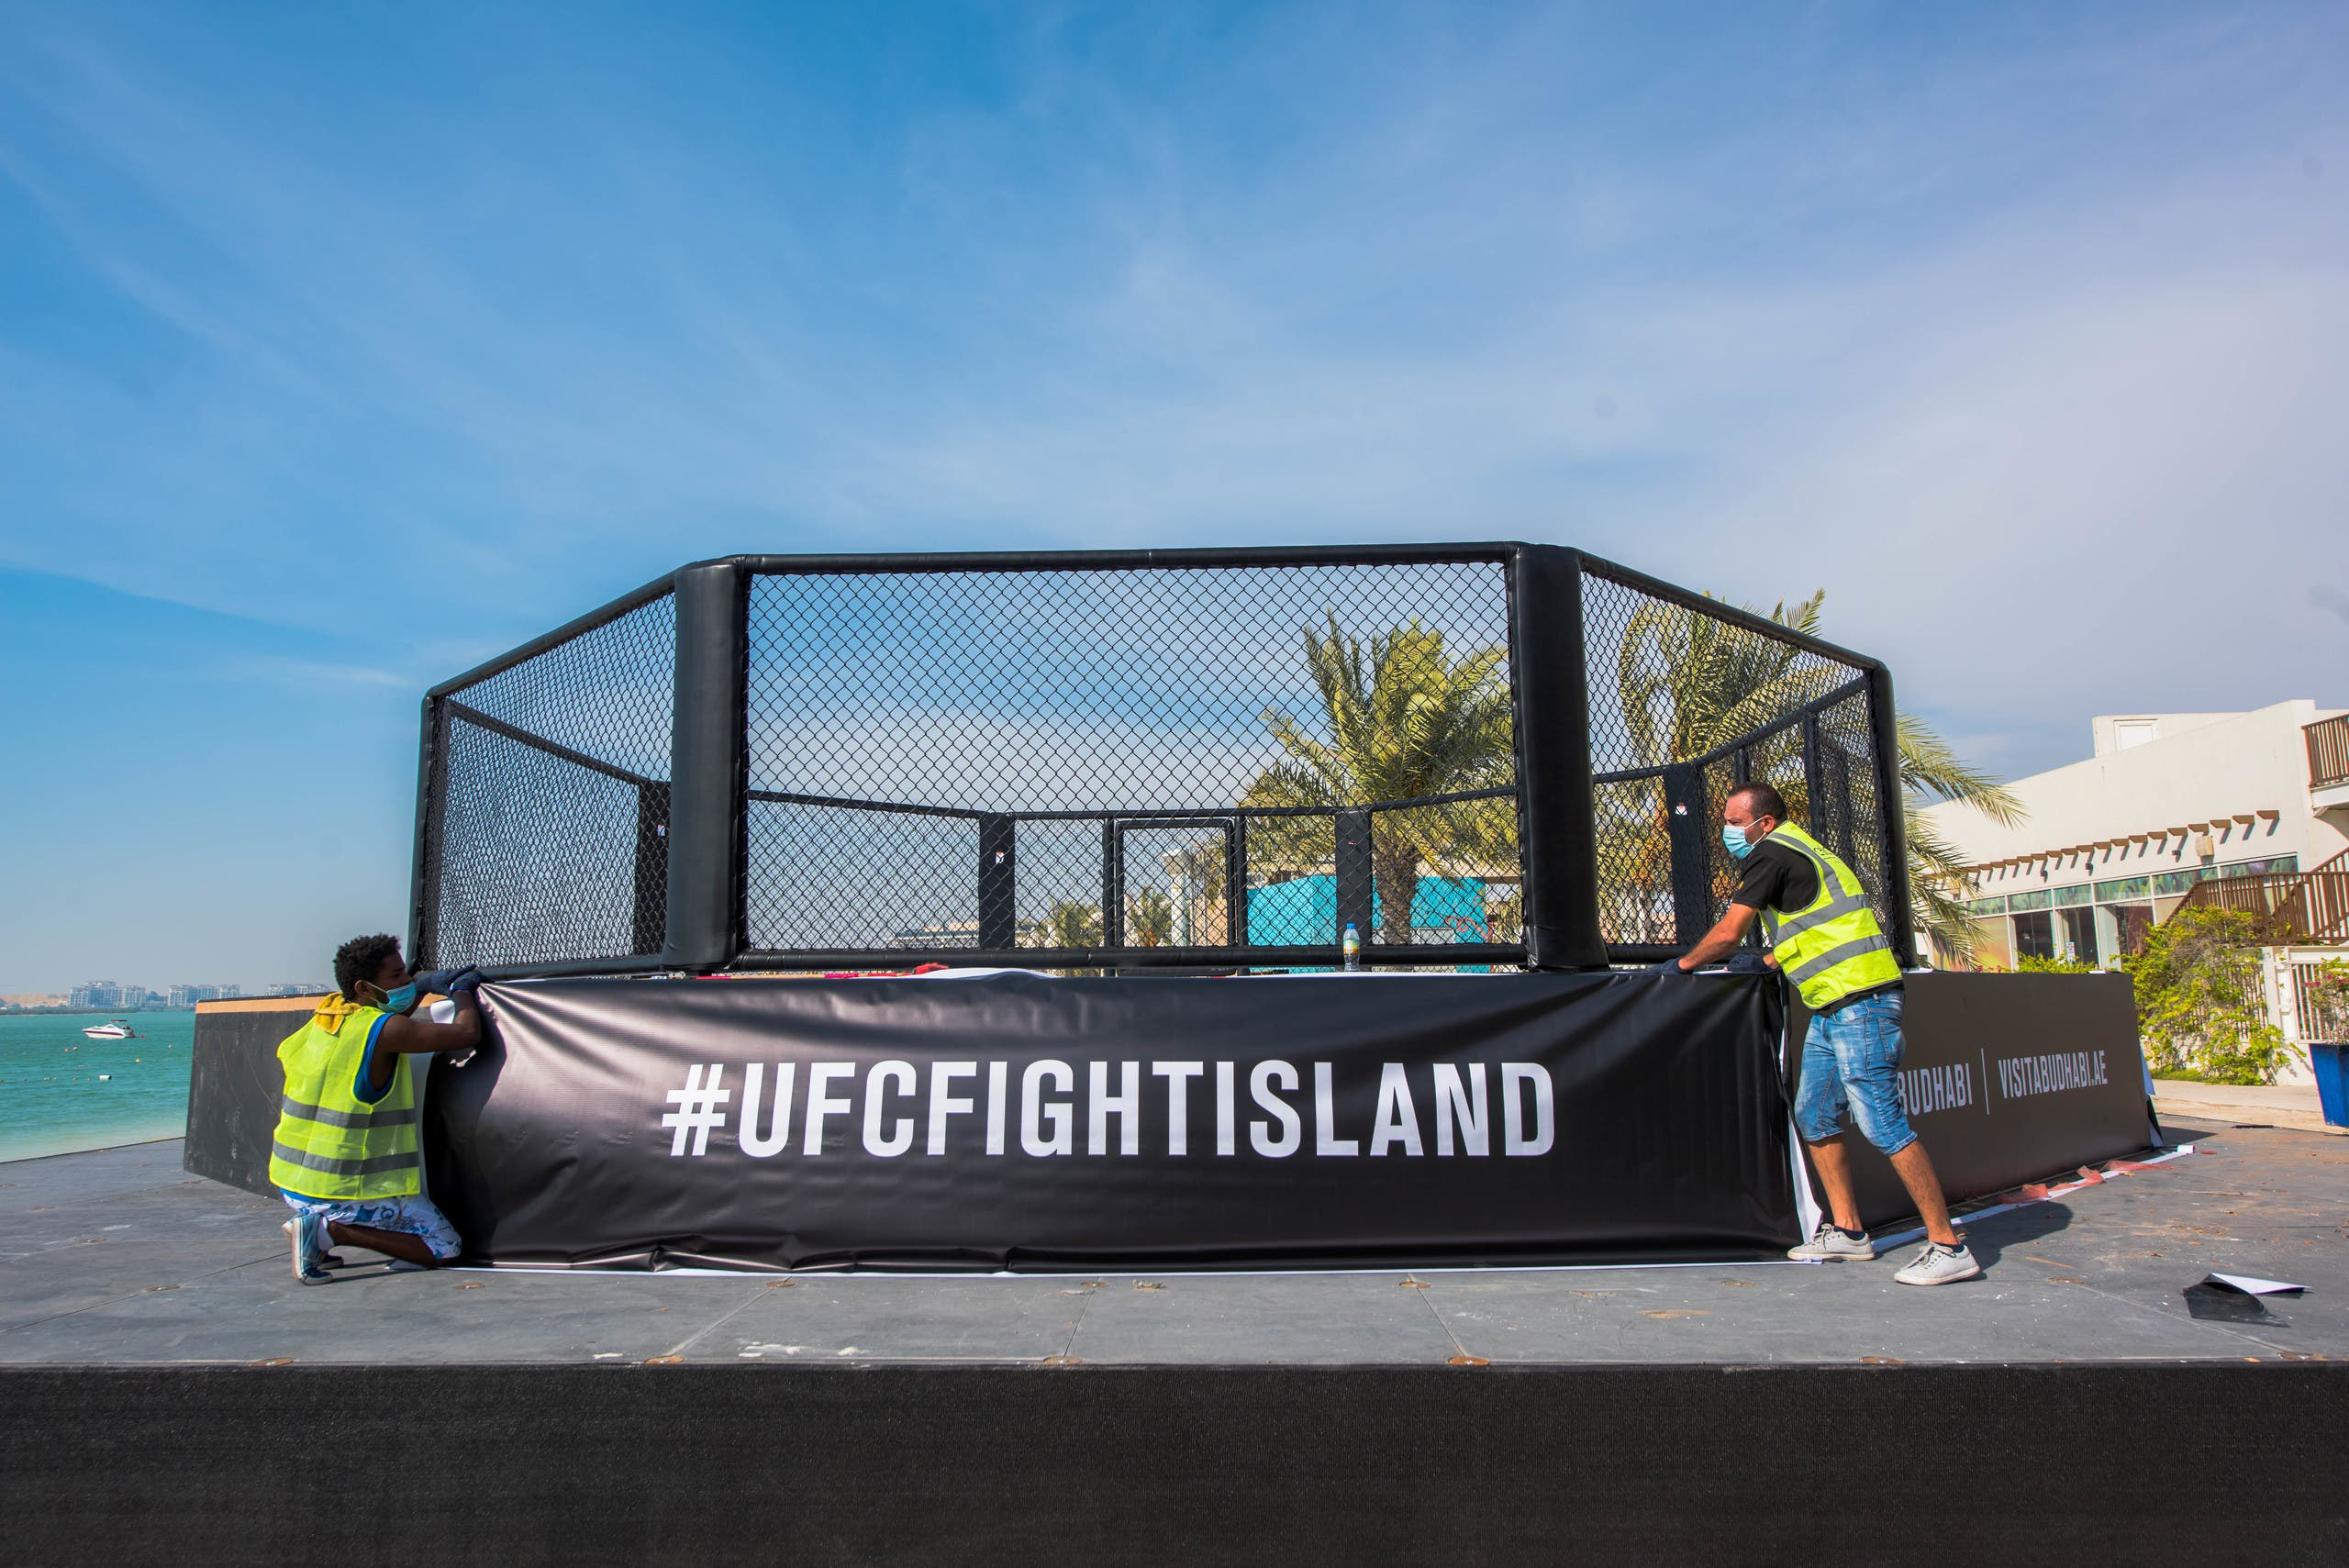 The UFC Fight Island Octogon at Yas Island in Abu Dhabi. (Supplied)